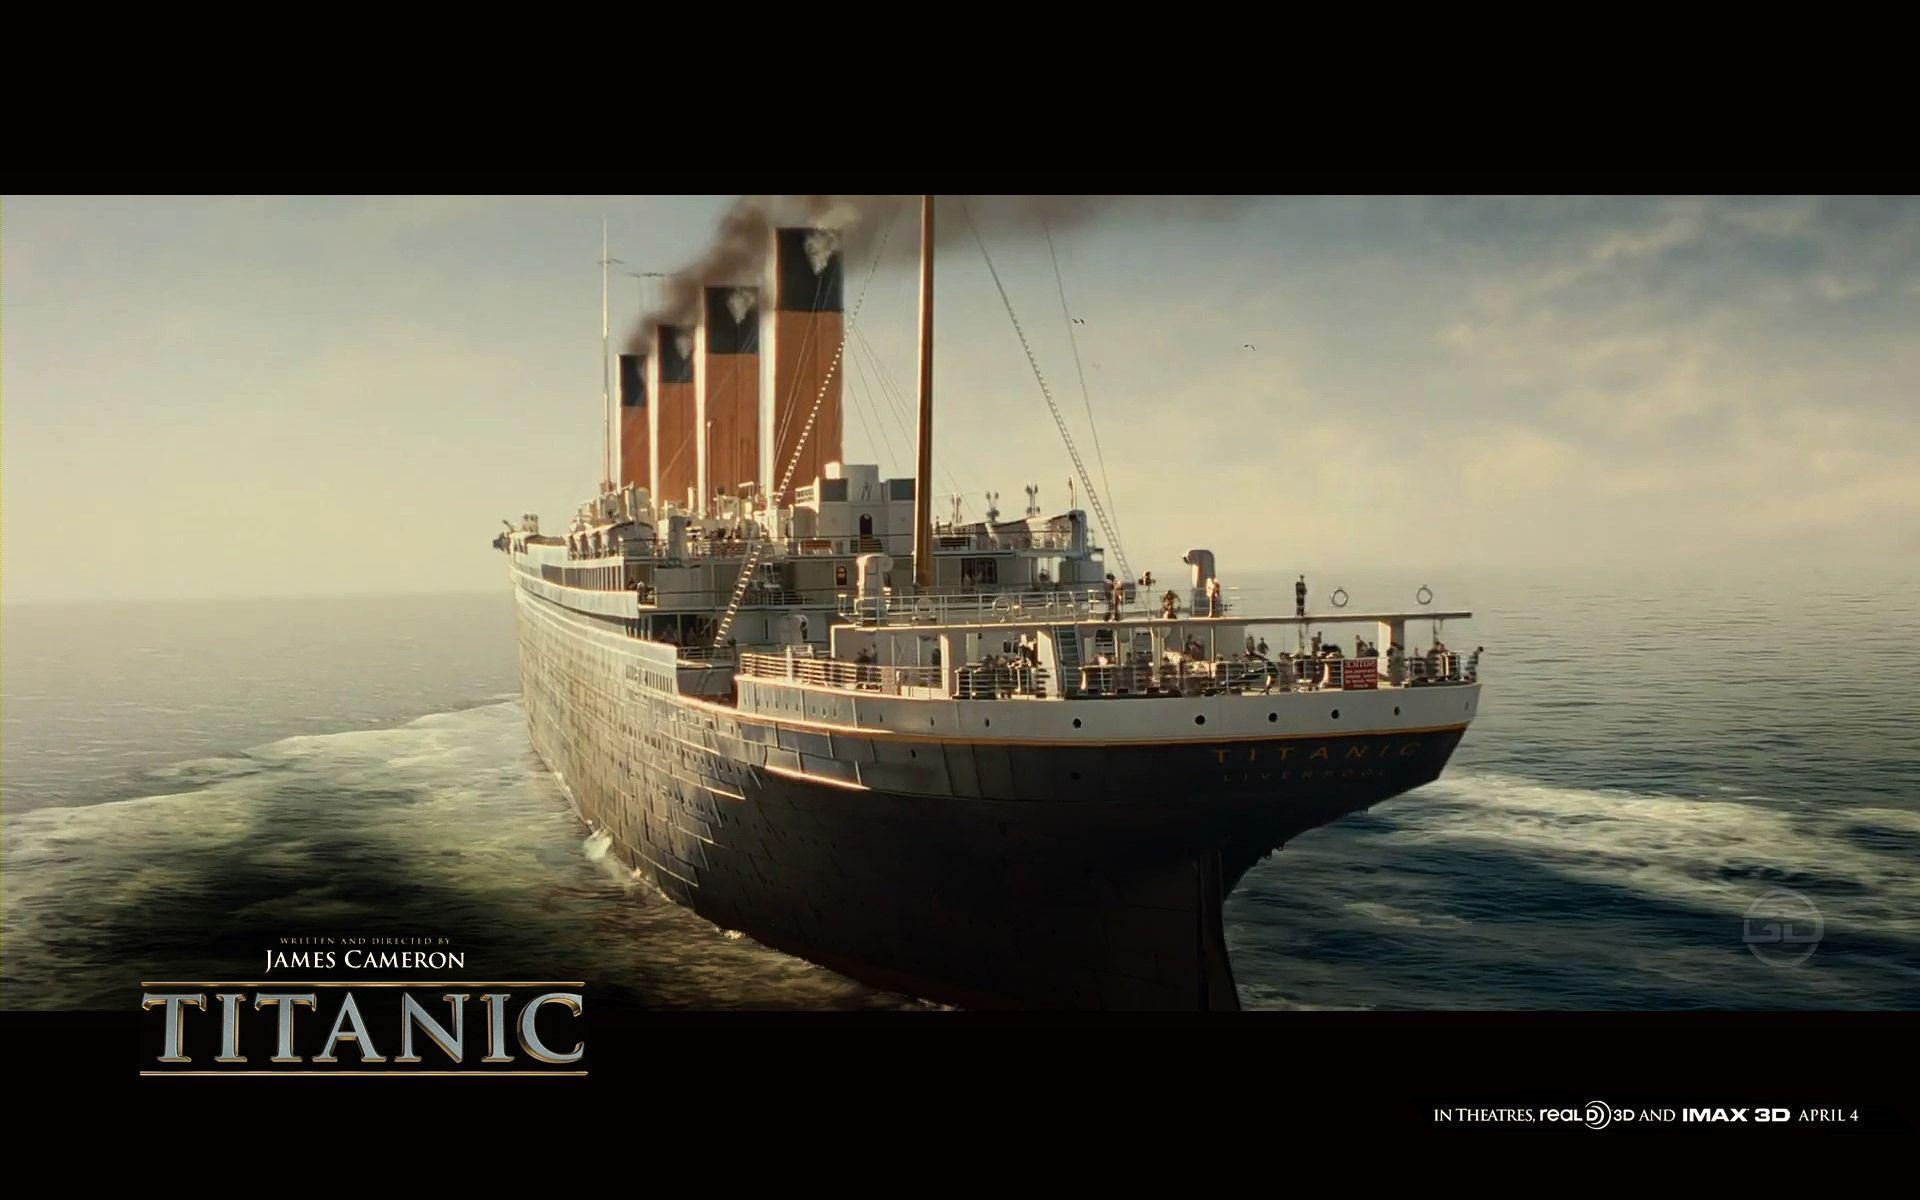 titanic ship images free - photo #40